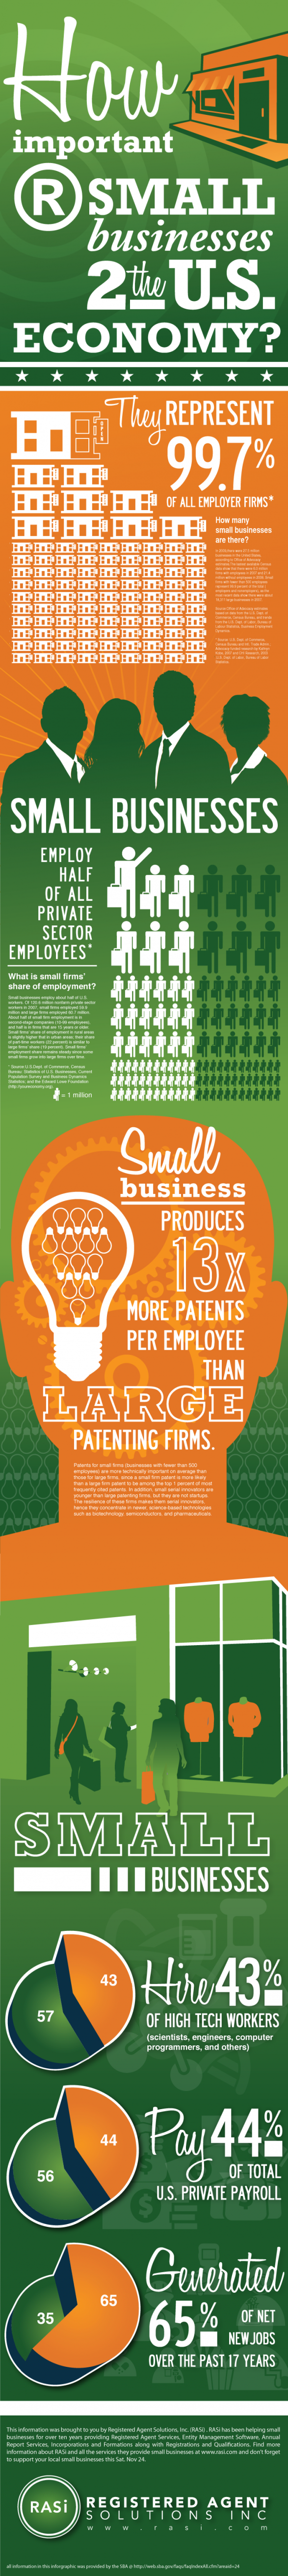 How important are small businesses to the US economy?